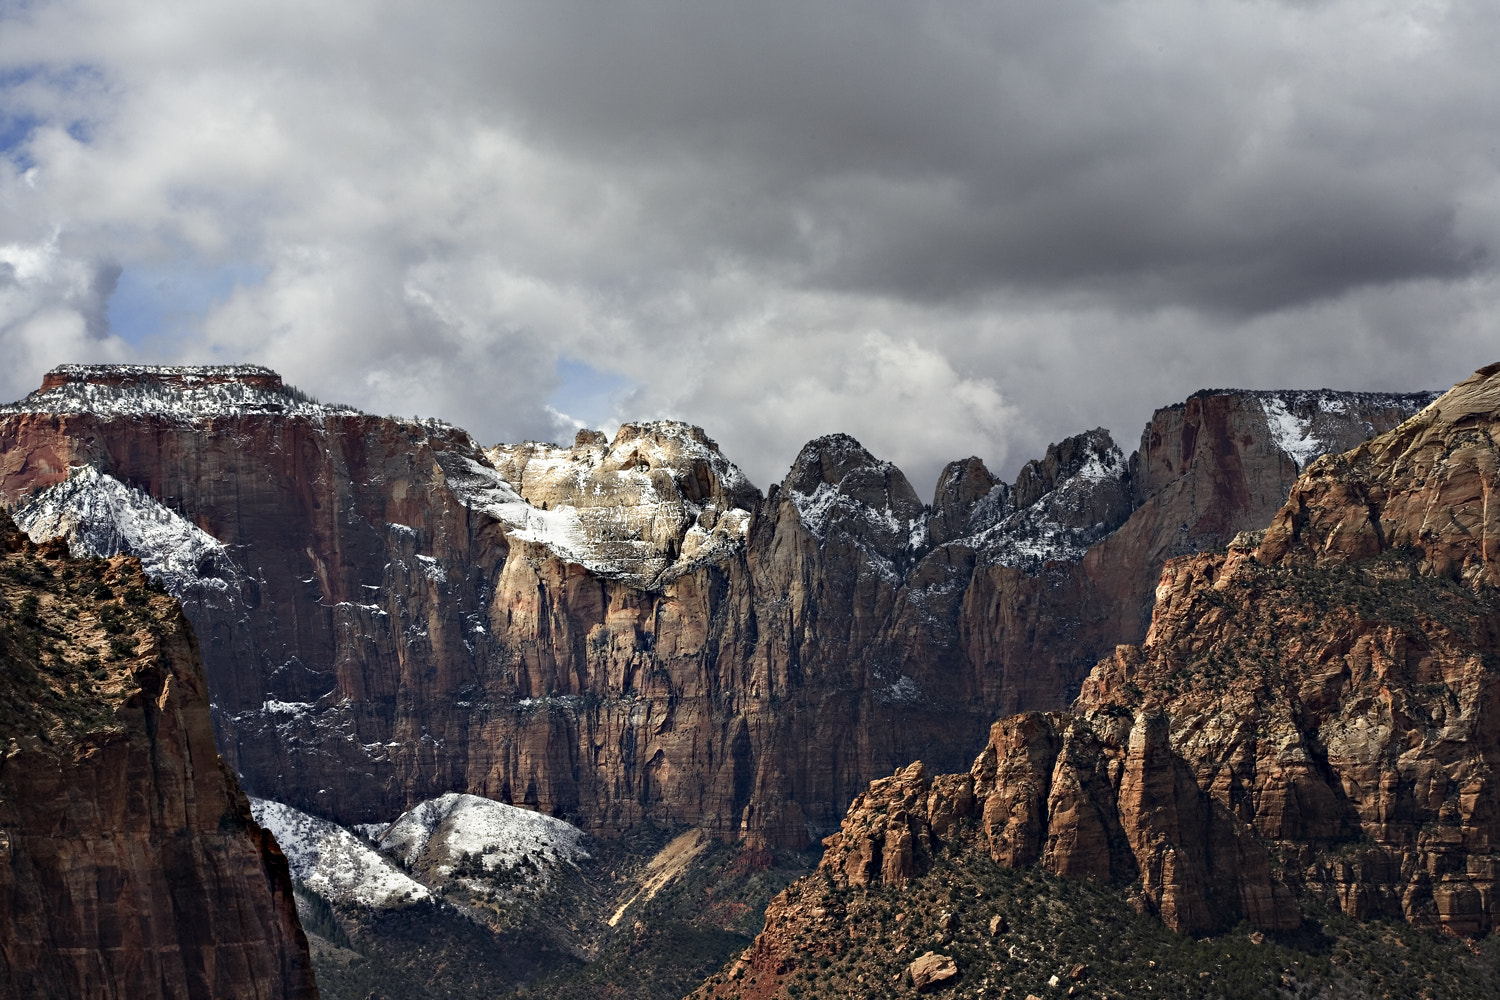 Photograph Zion Canyon by Jack Arnold on 500px